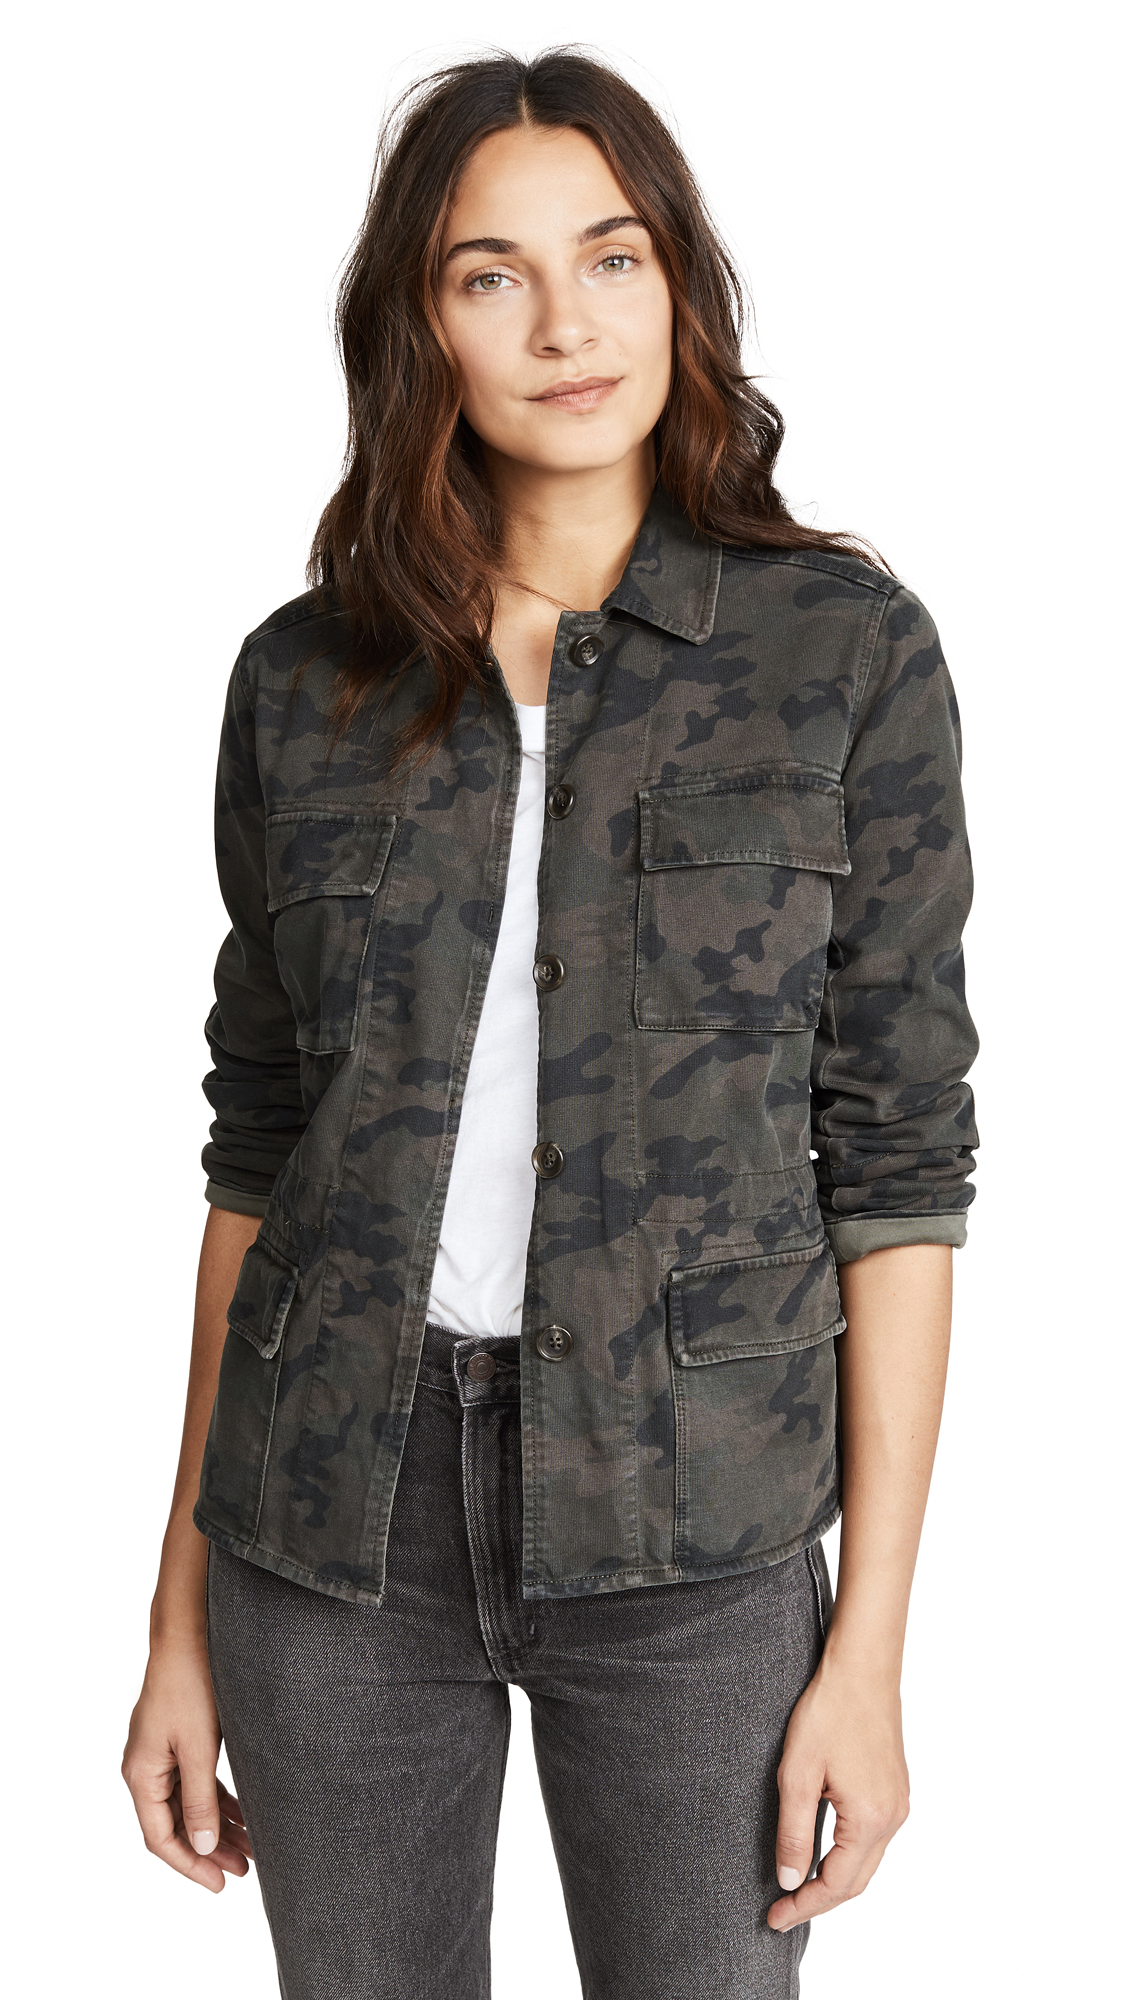 James Perse Military Jacket In Artillery Camo